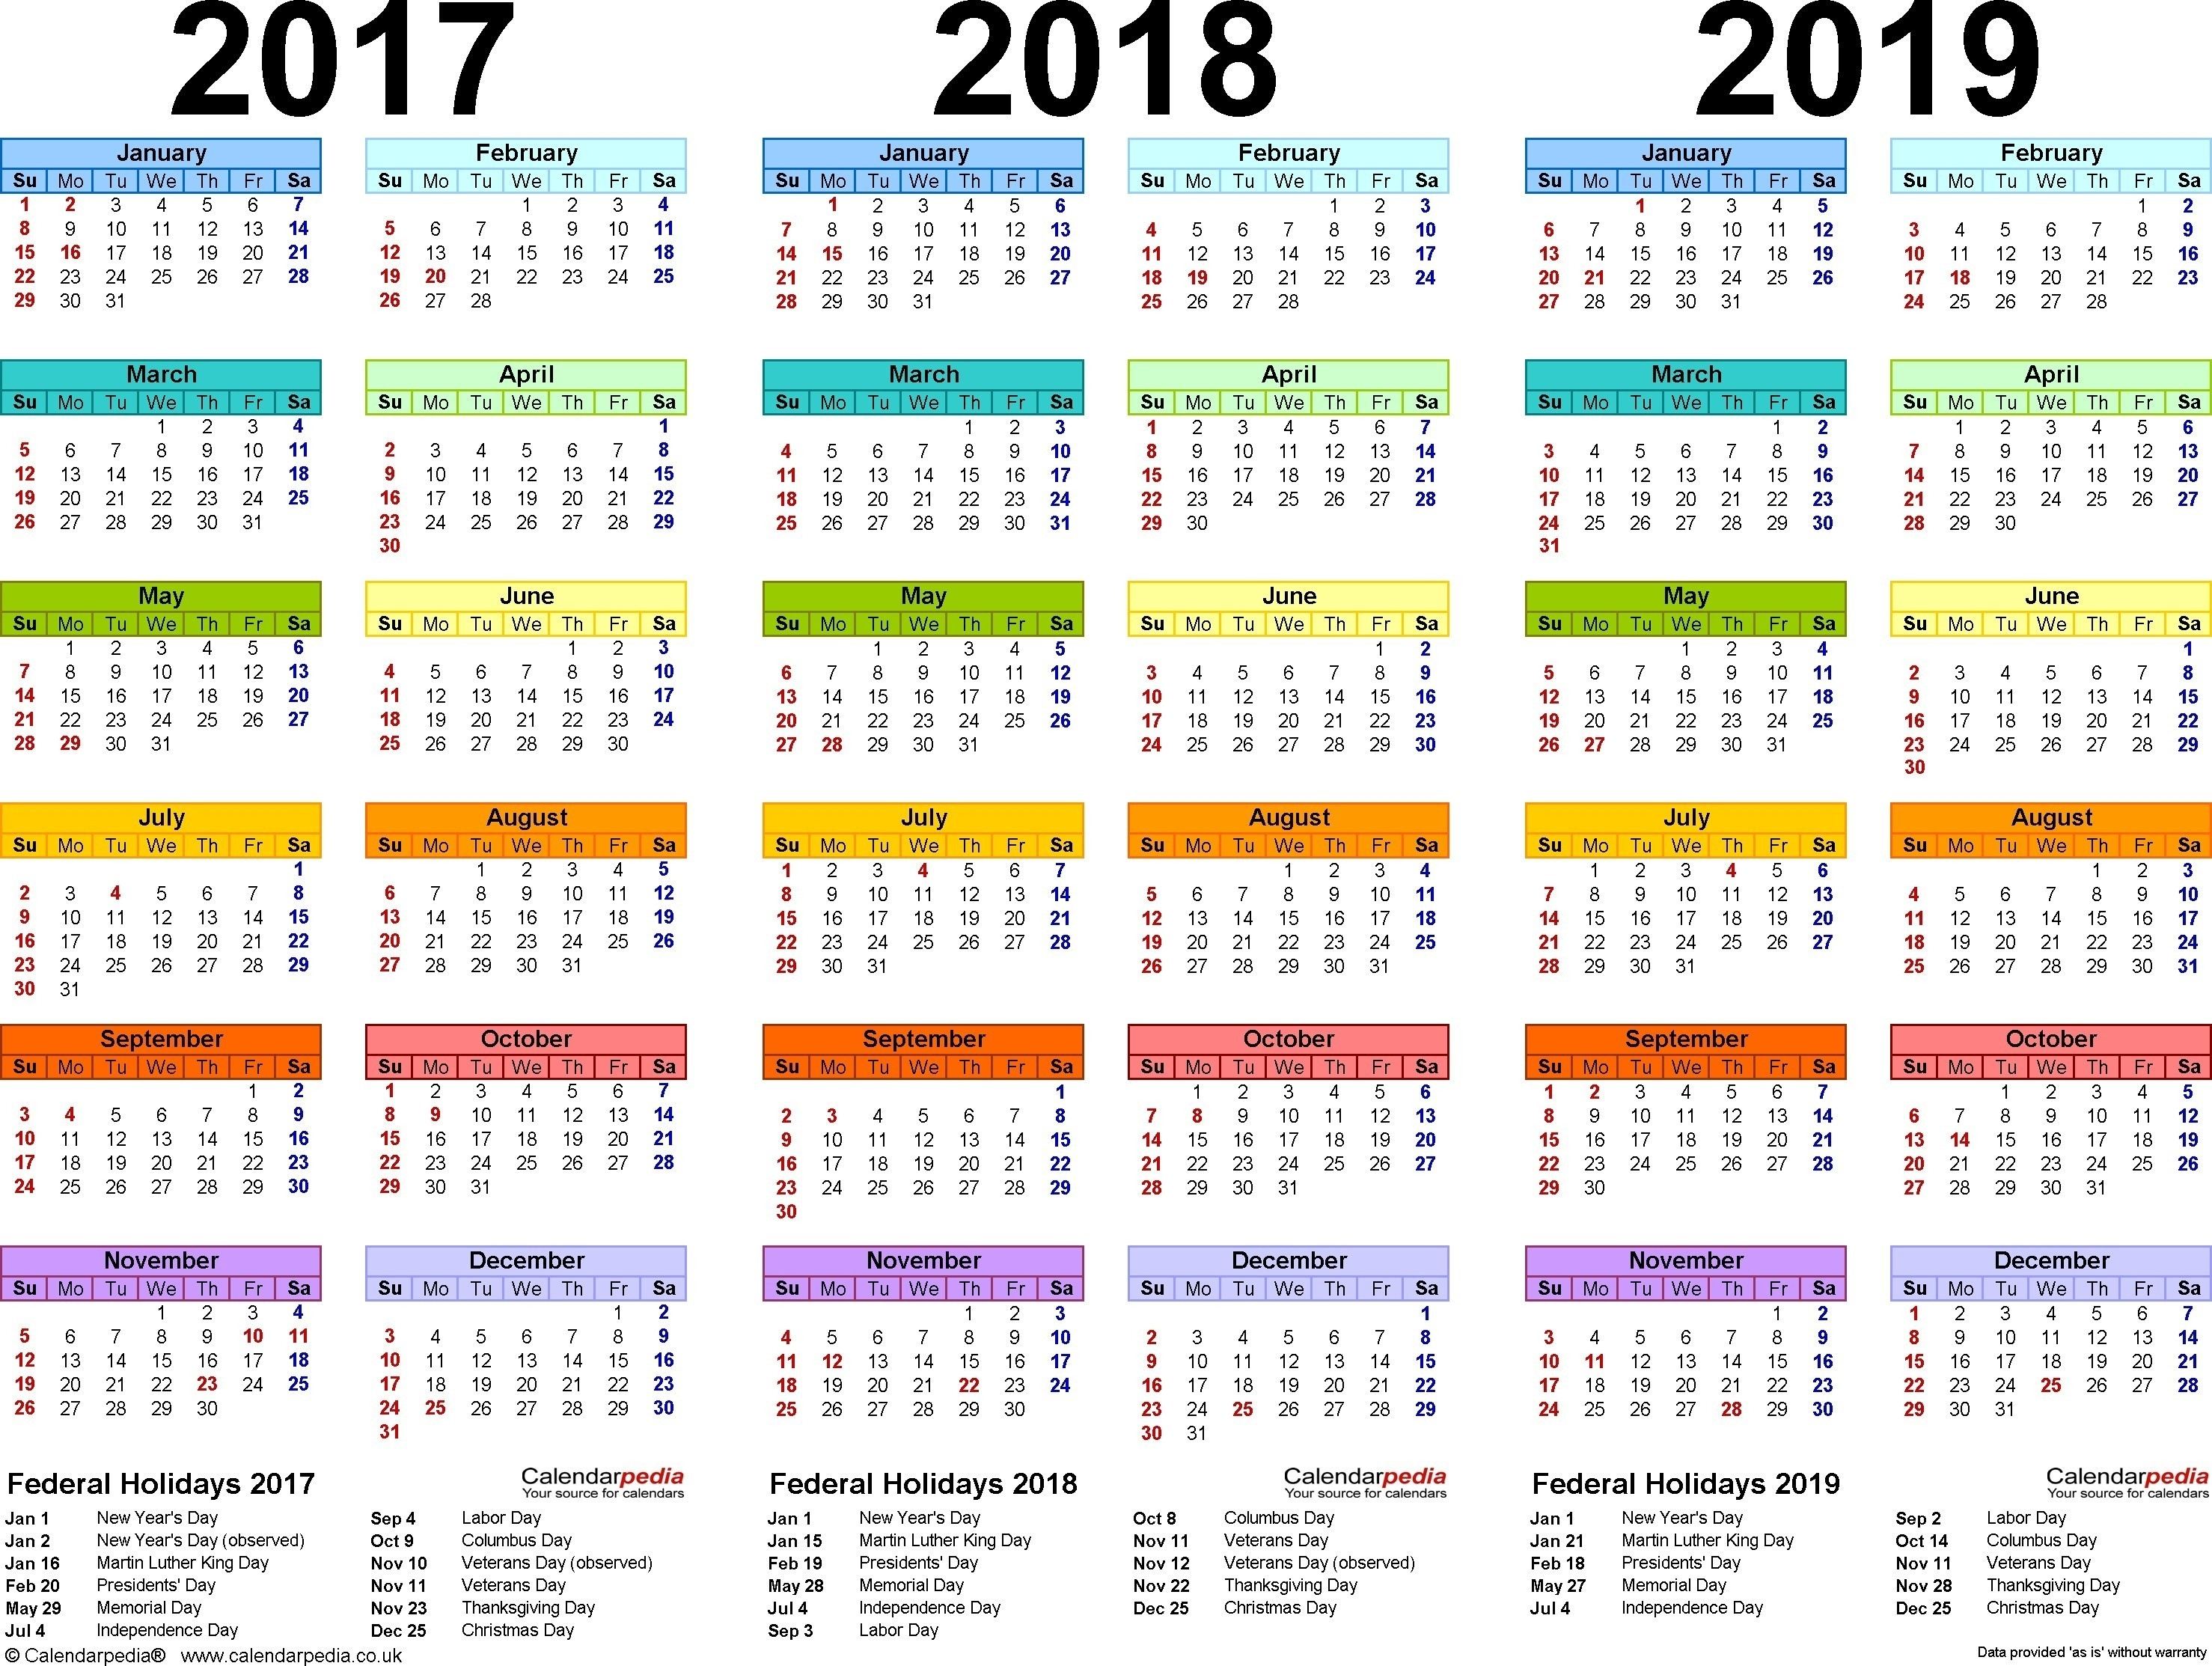 Depo Provera Calendar 2019 Printable Download For Free  Printable Depo Calendar 2020